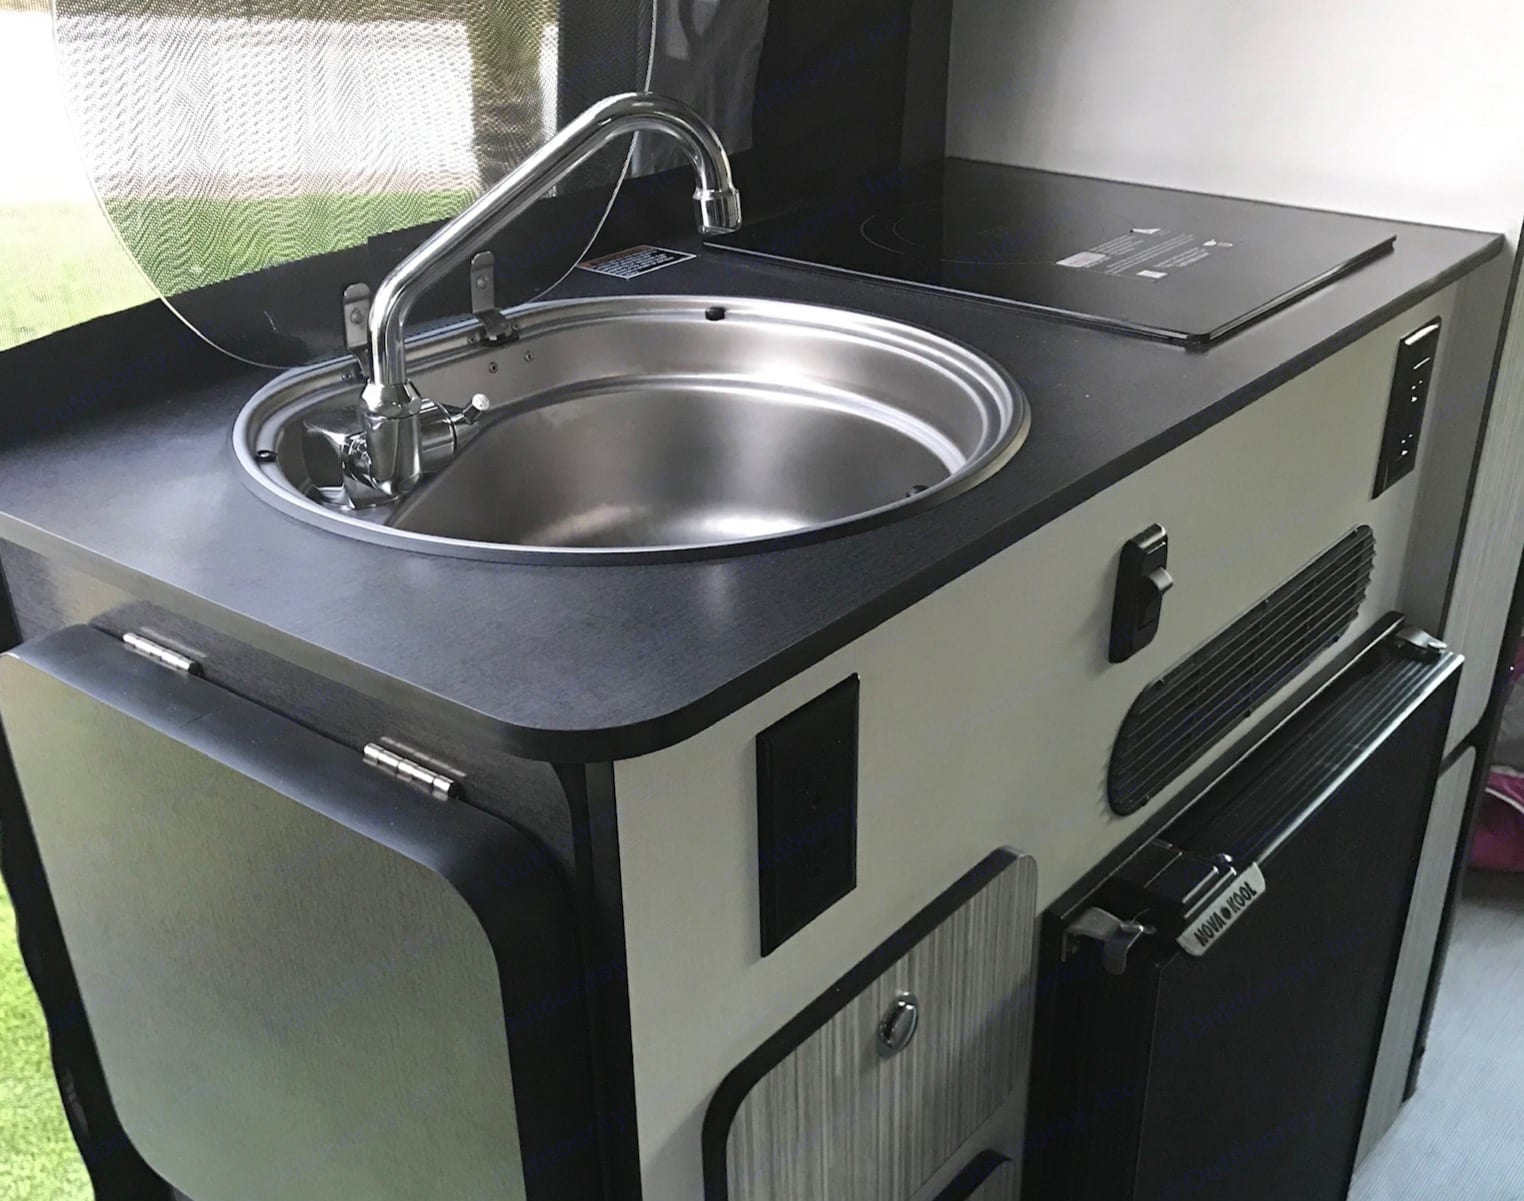 Galley with sink, stove top and fridge.. Mercedes Sprinter 2020